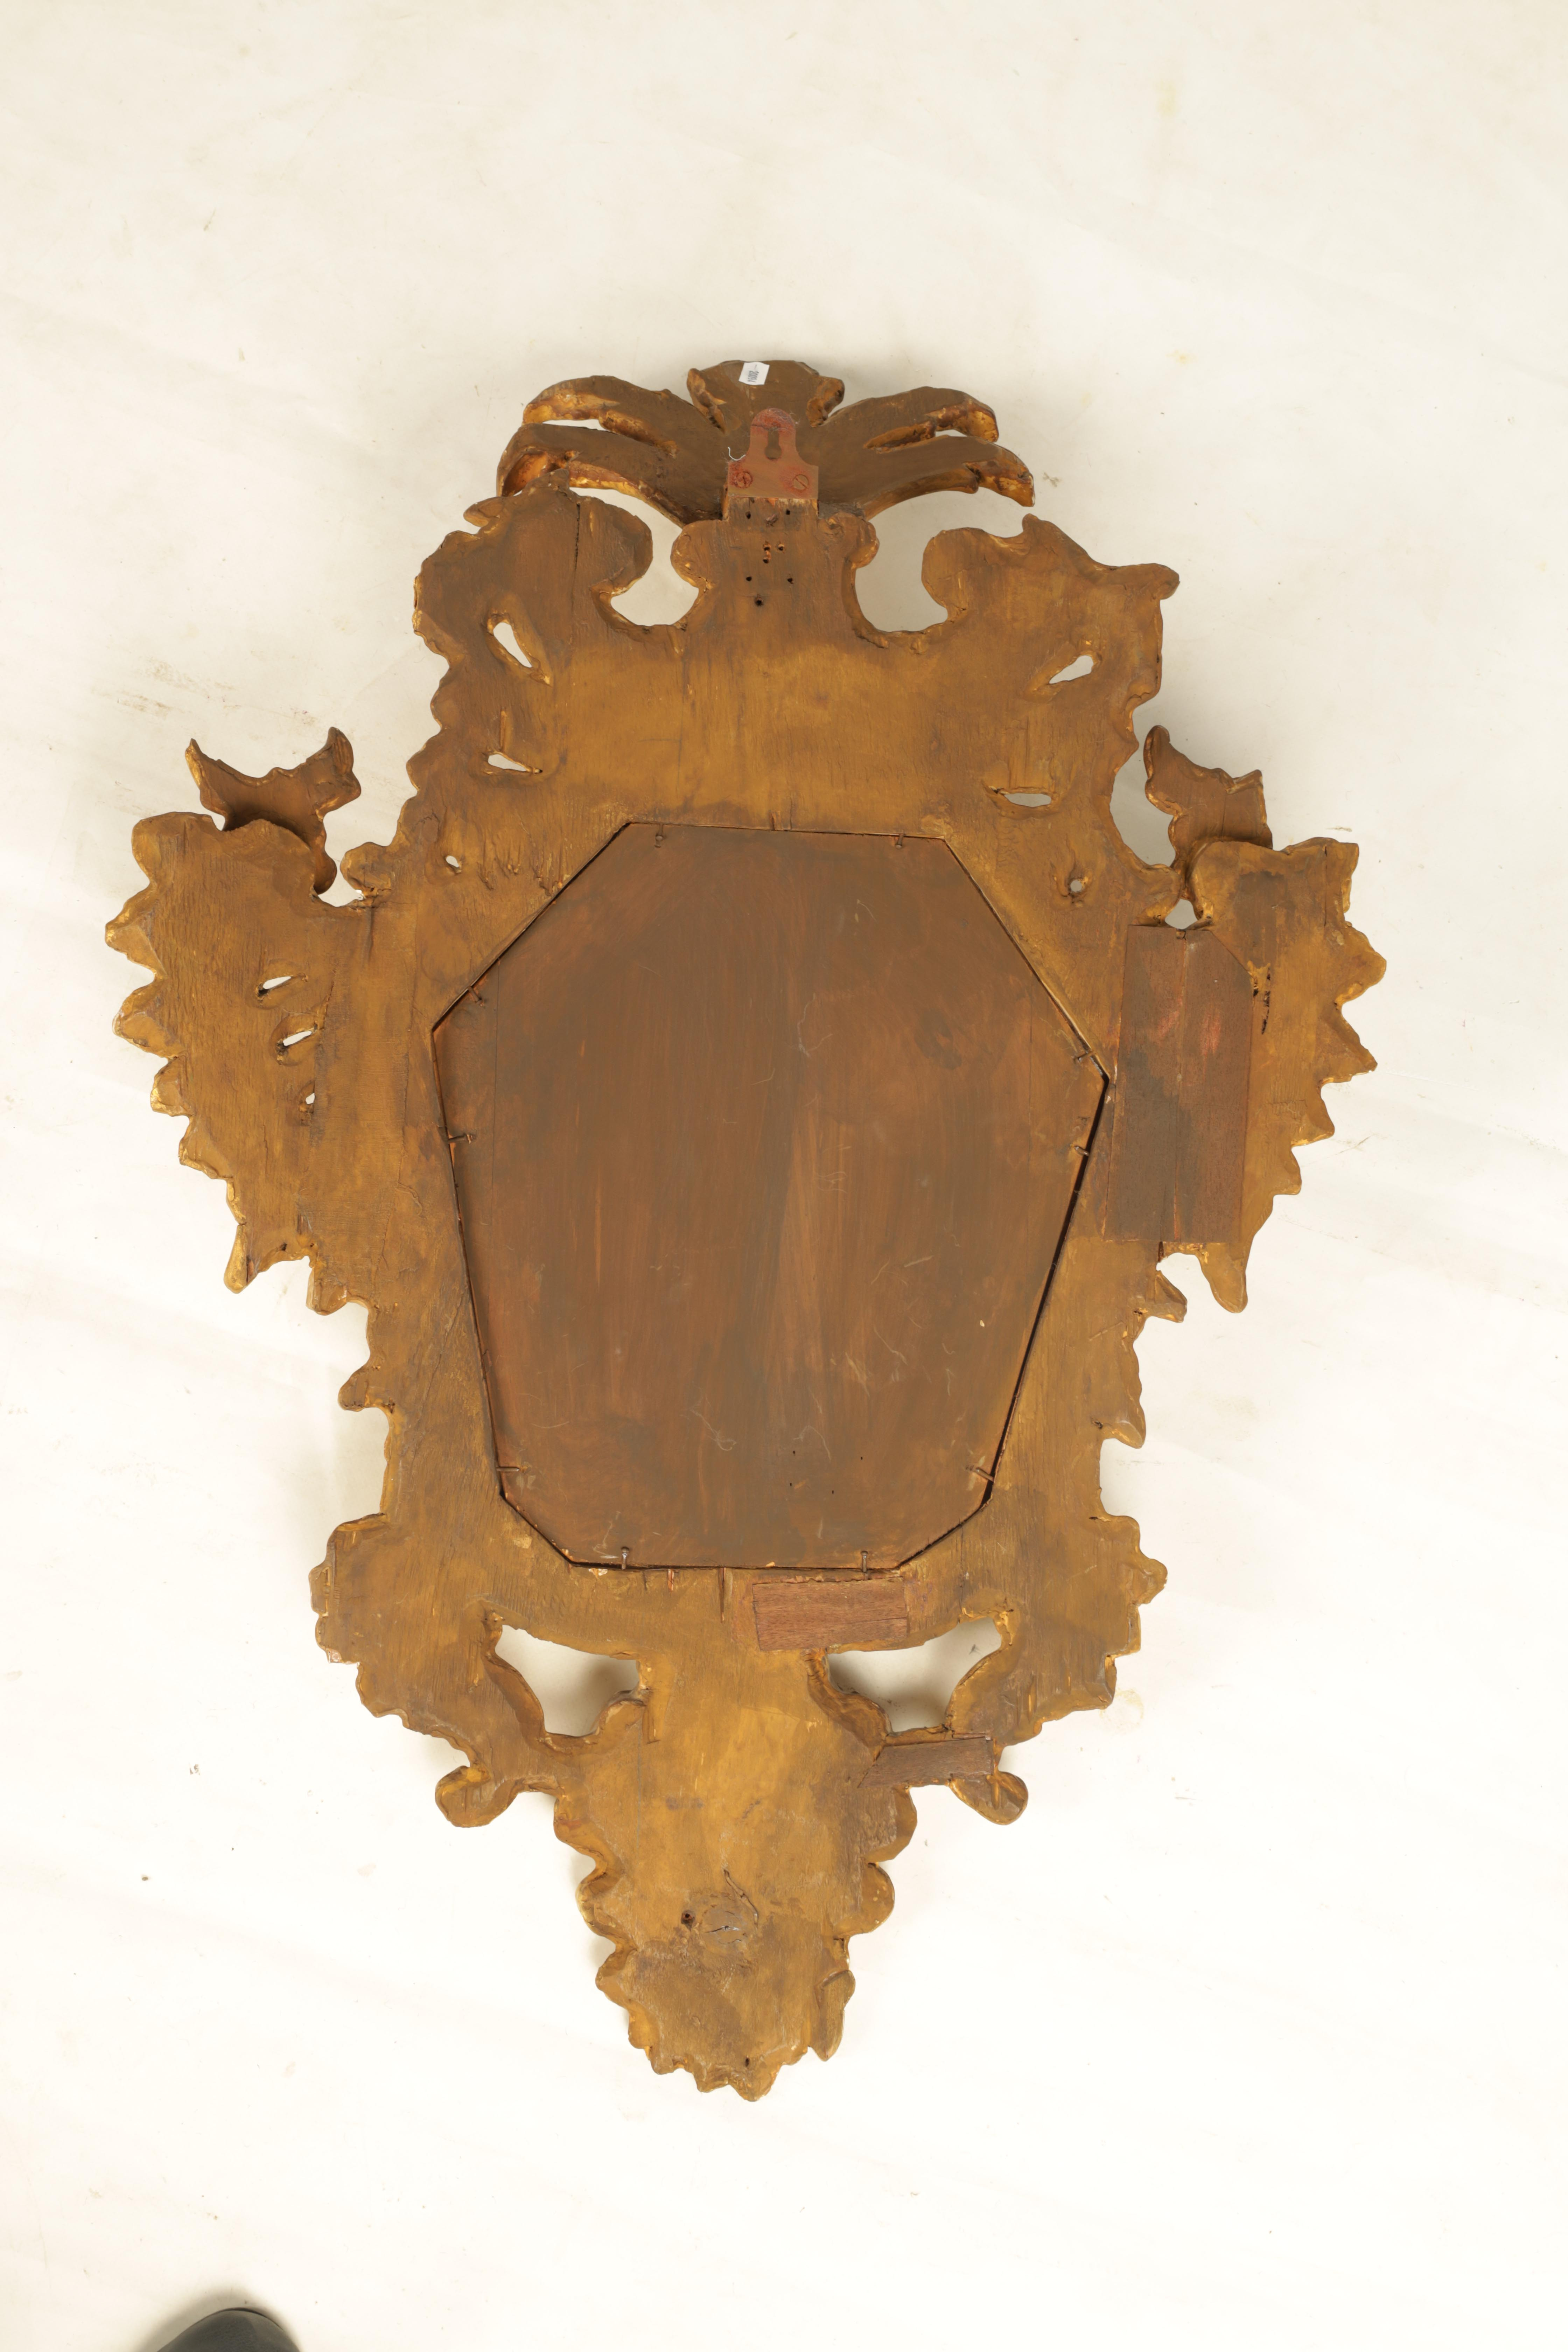 A PAIR OF 19TH CENTURY CARVED GILT WOOD ITALIAN FLORENTINE MIRRORS with leaf and shell carved frames - Image 8 of 8